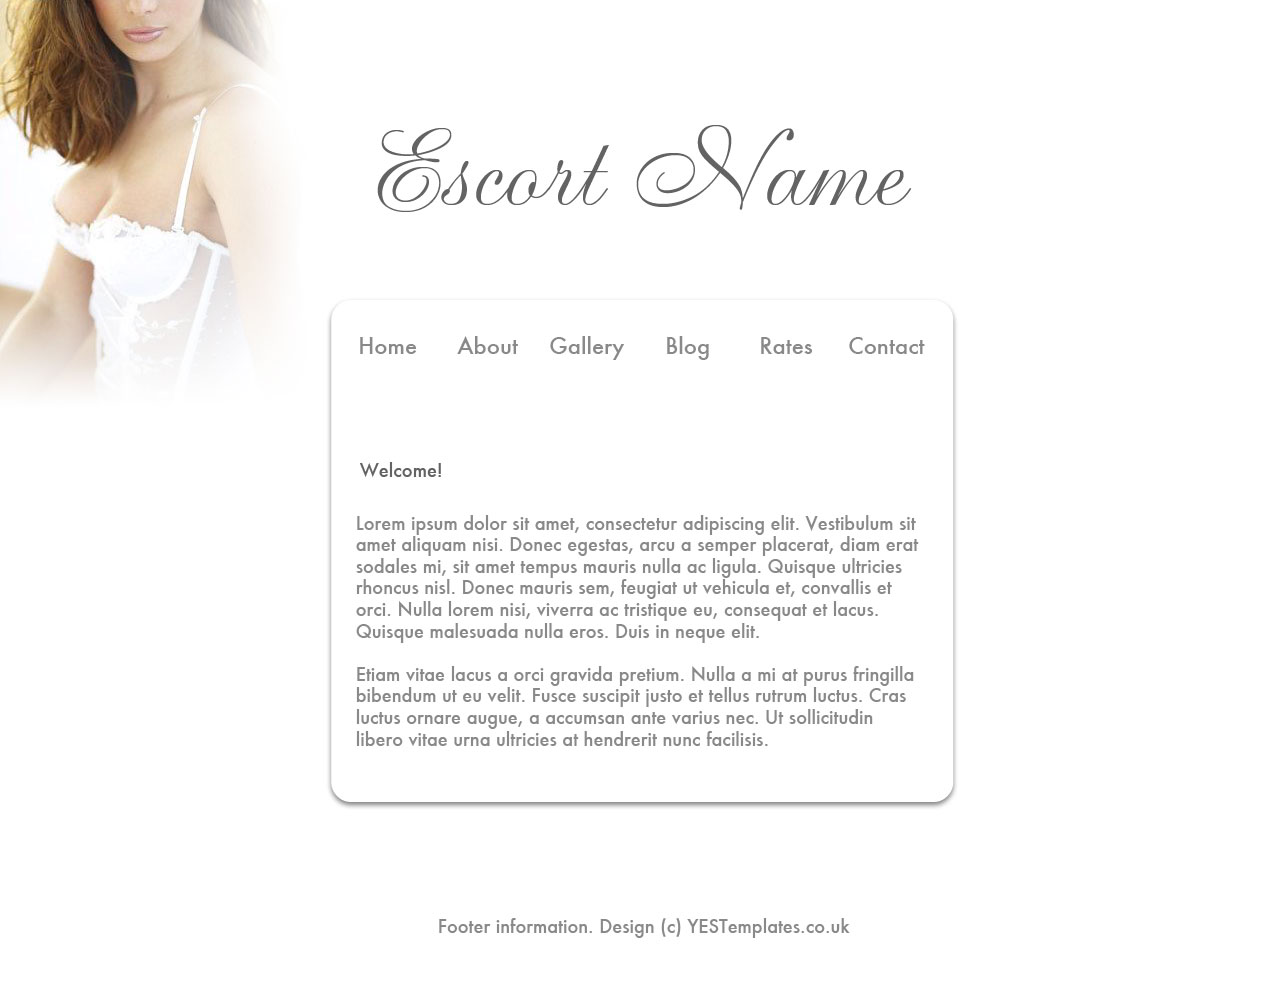 Your Escort Site - Template - White Haze